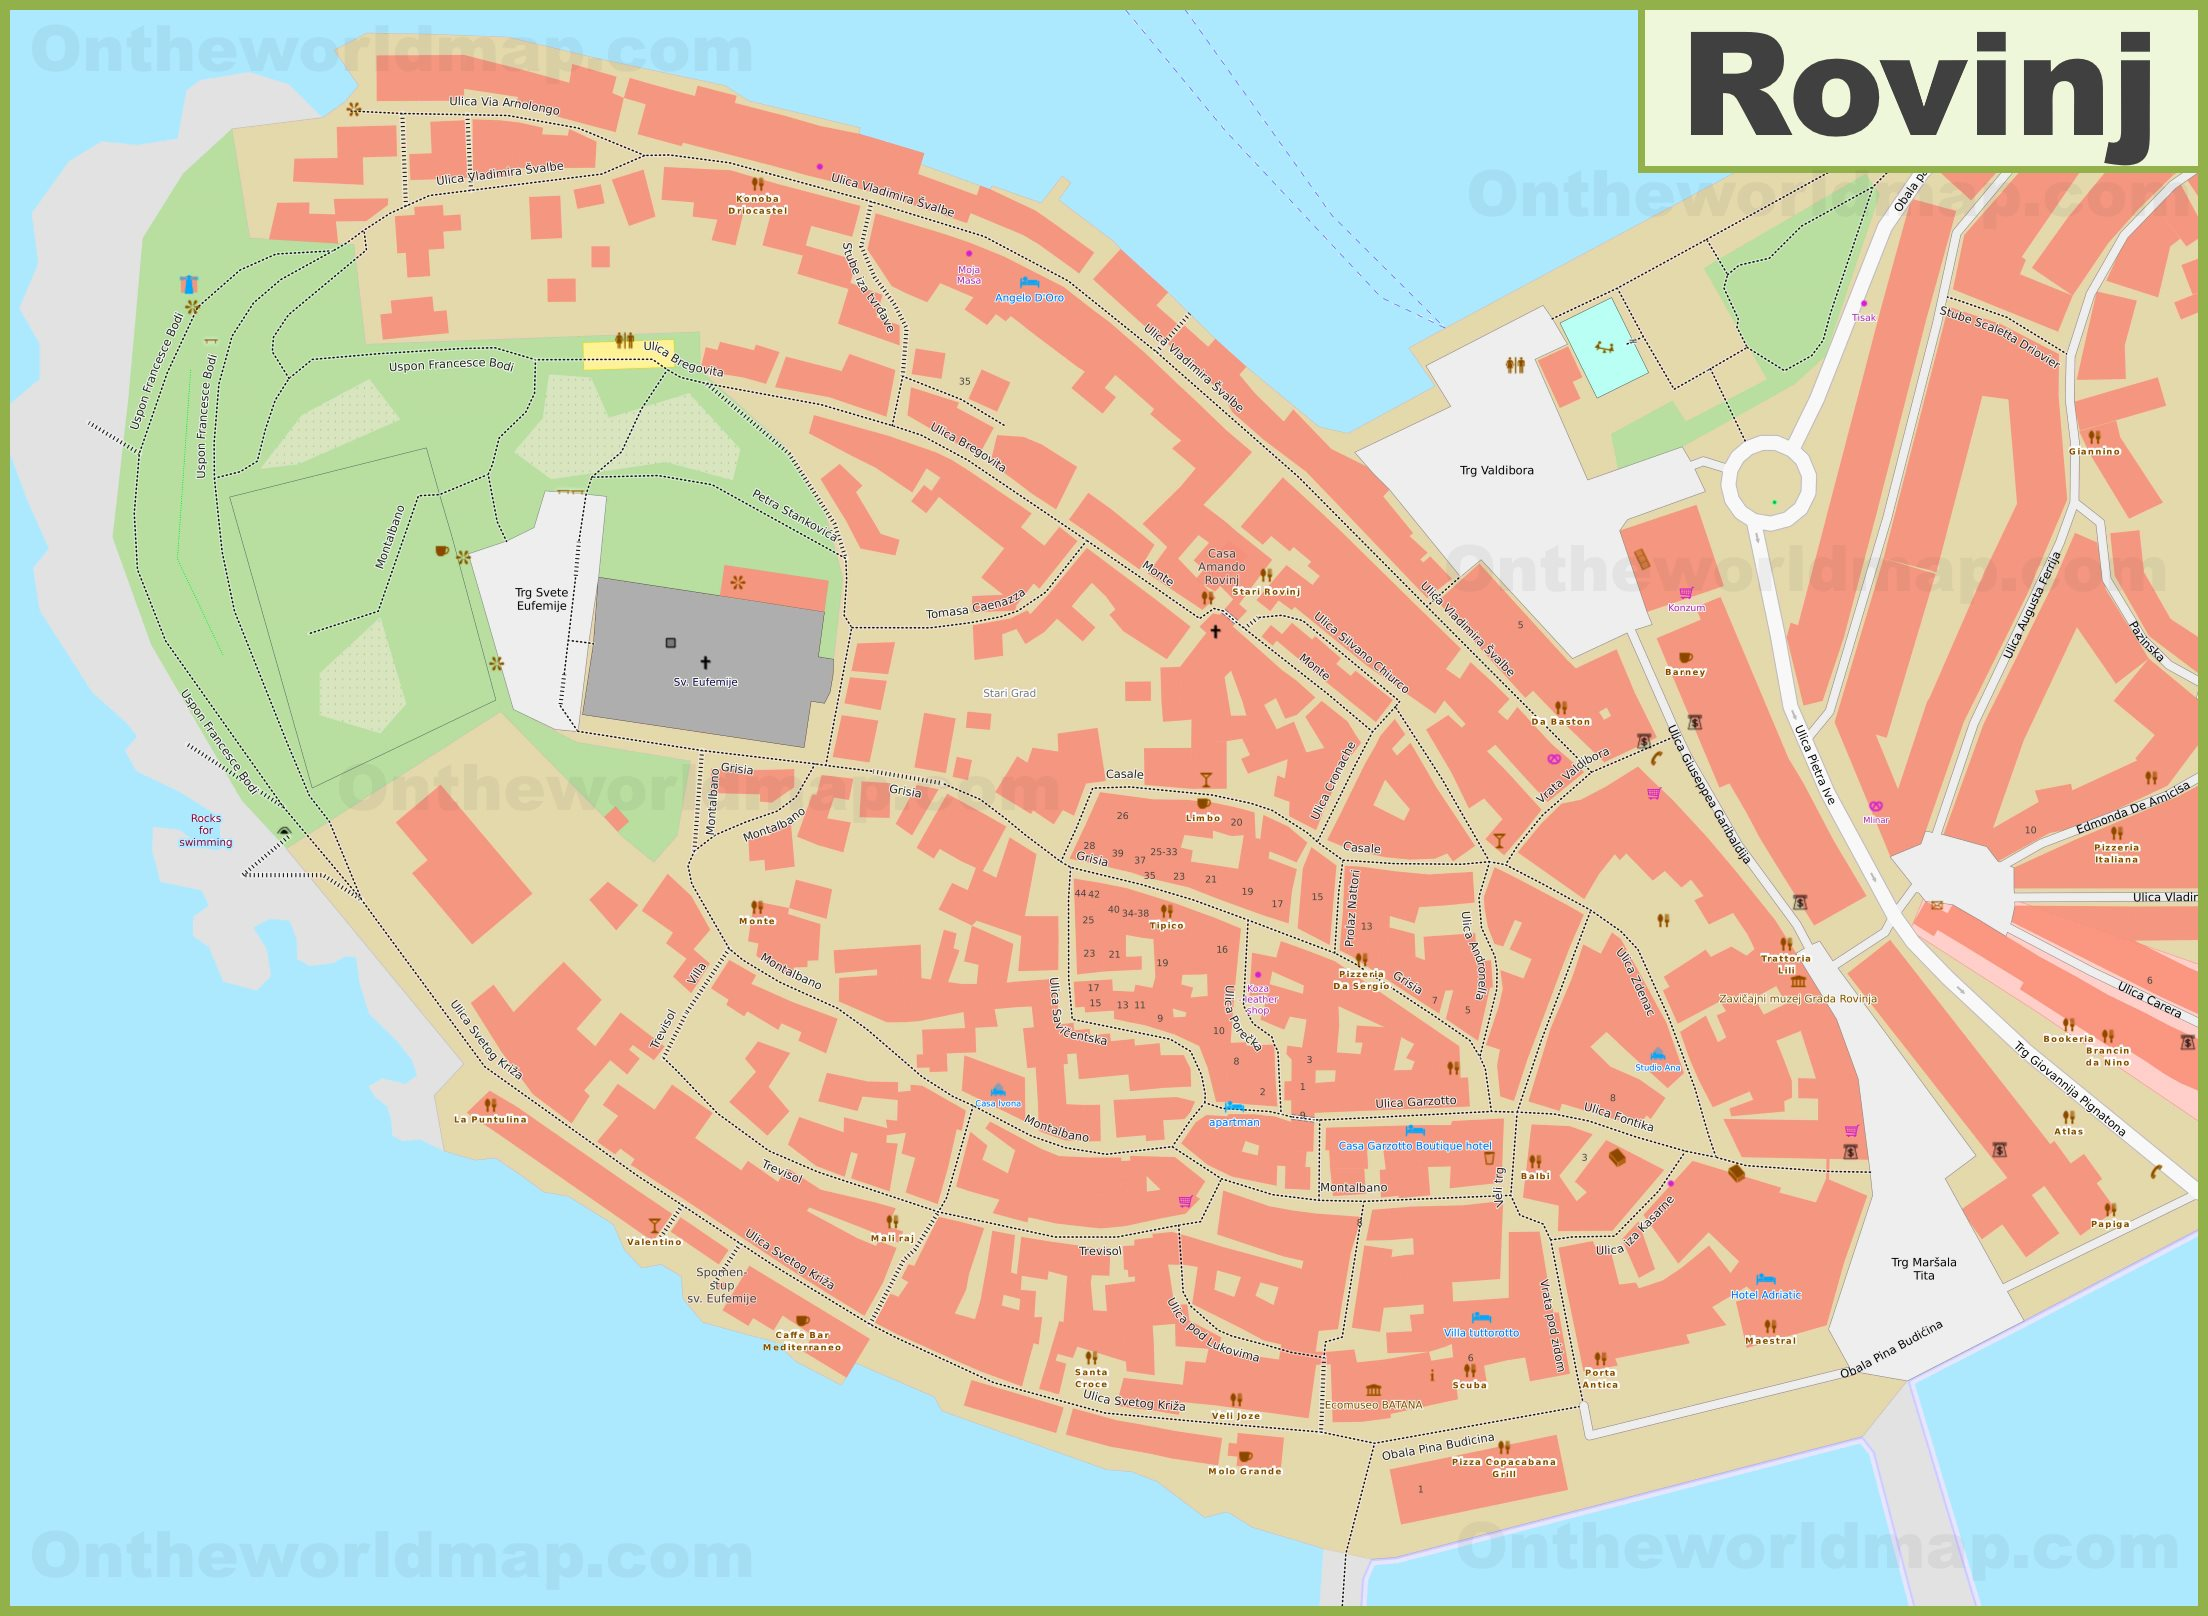 Rovinj Old Town Map